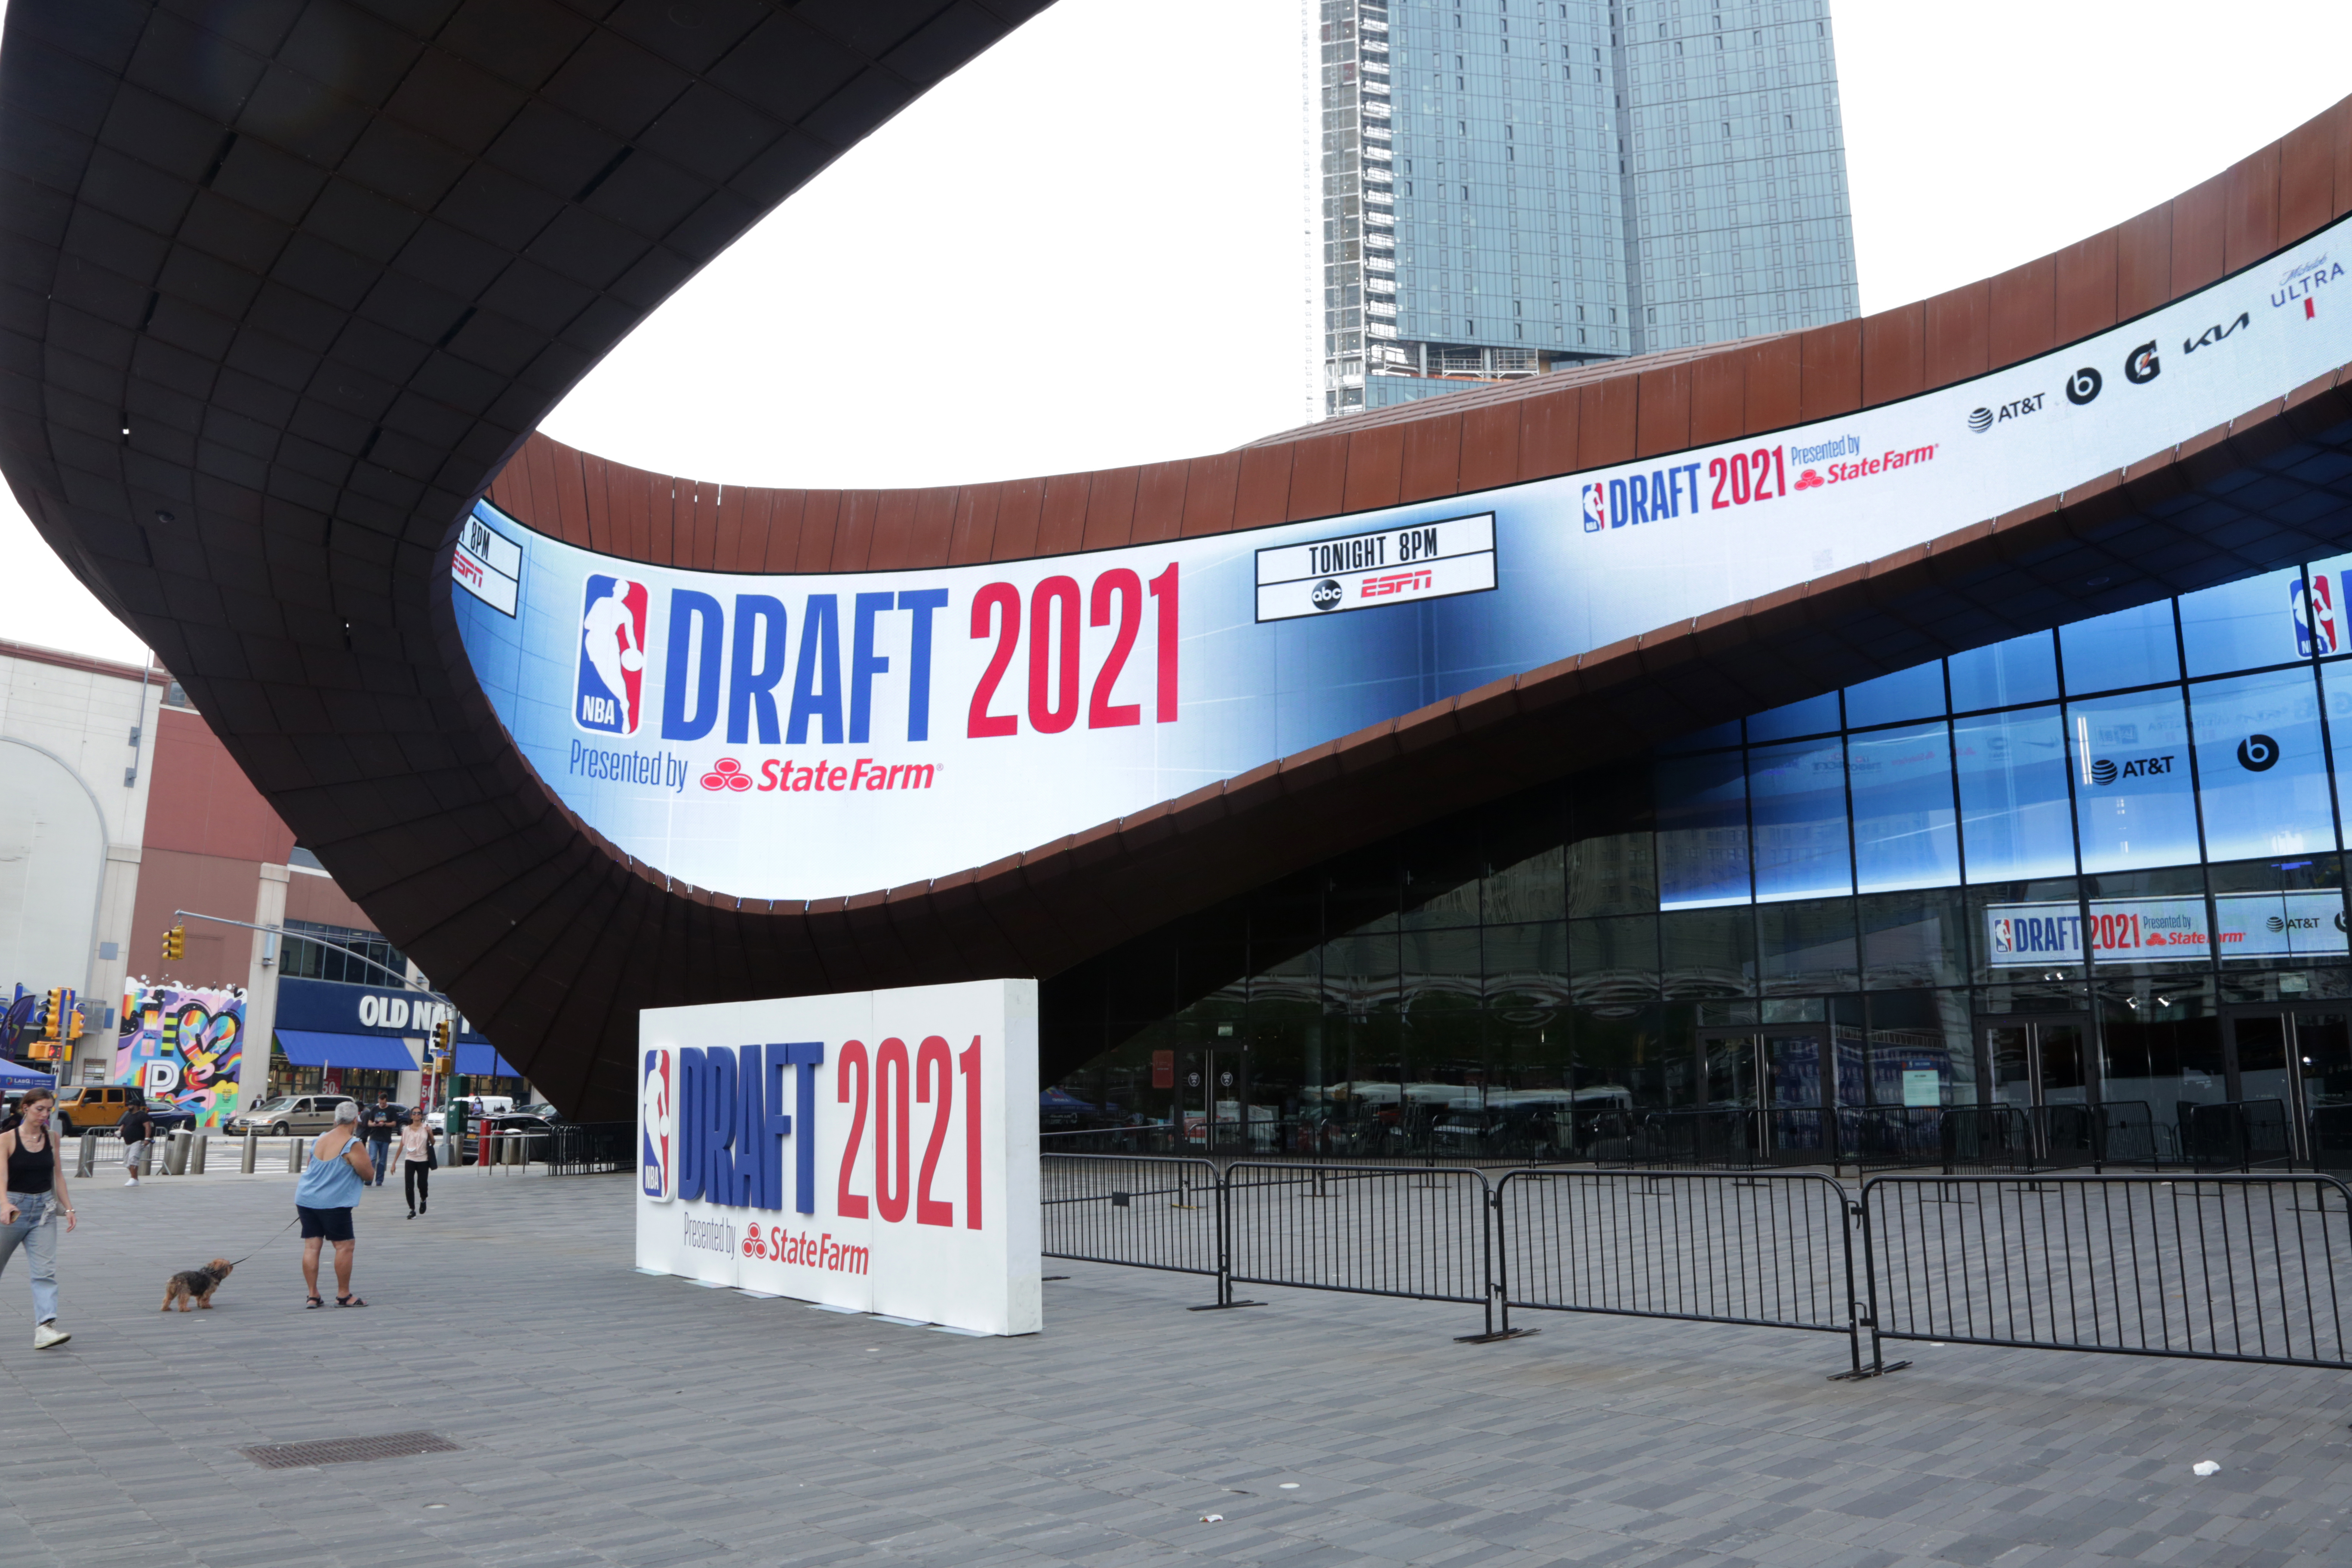 An overall exterior arena shot before the 2021 NBA Draft on July 29, 2021 at Barclays Center in Brooklyn, New York.